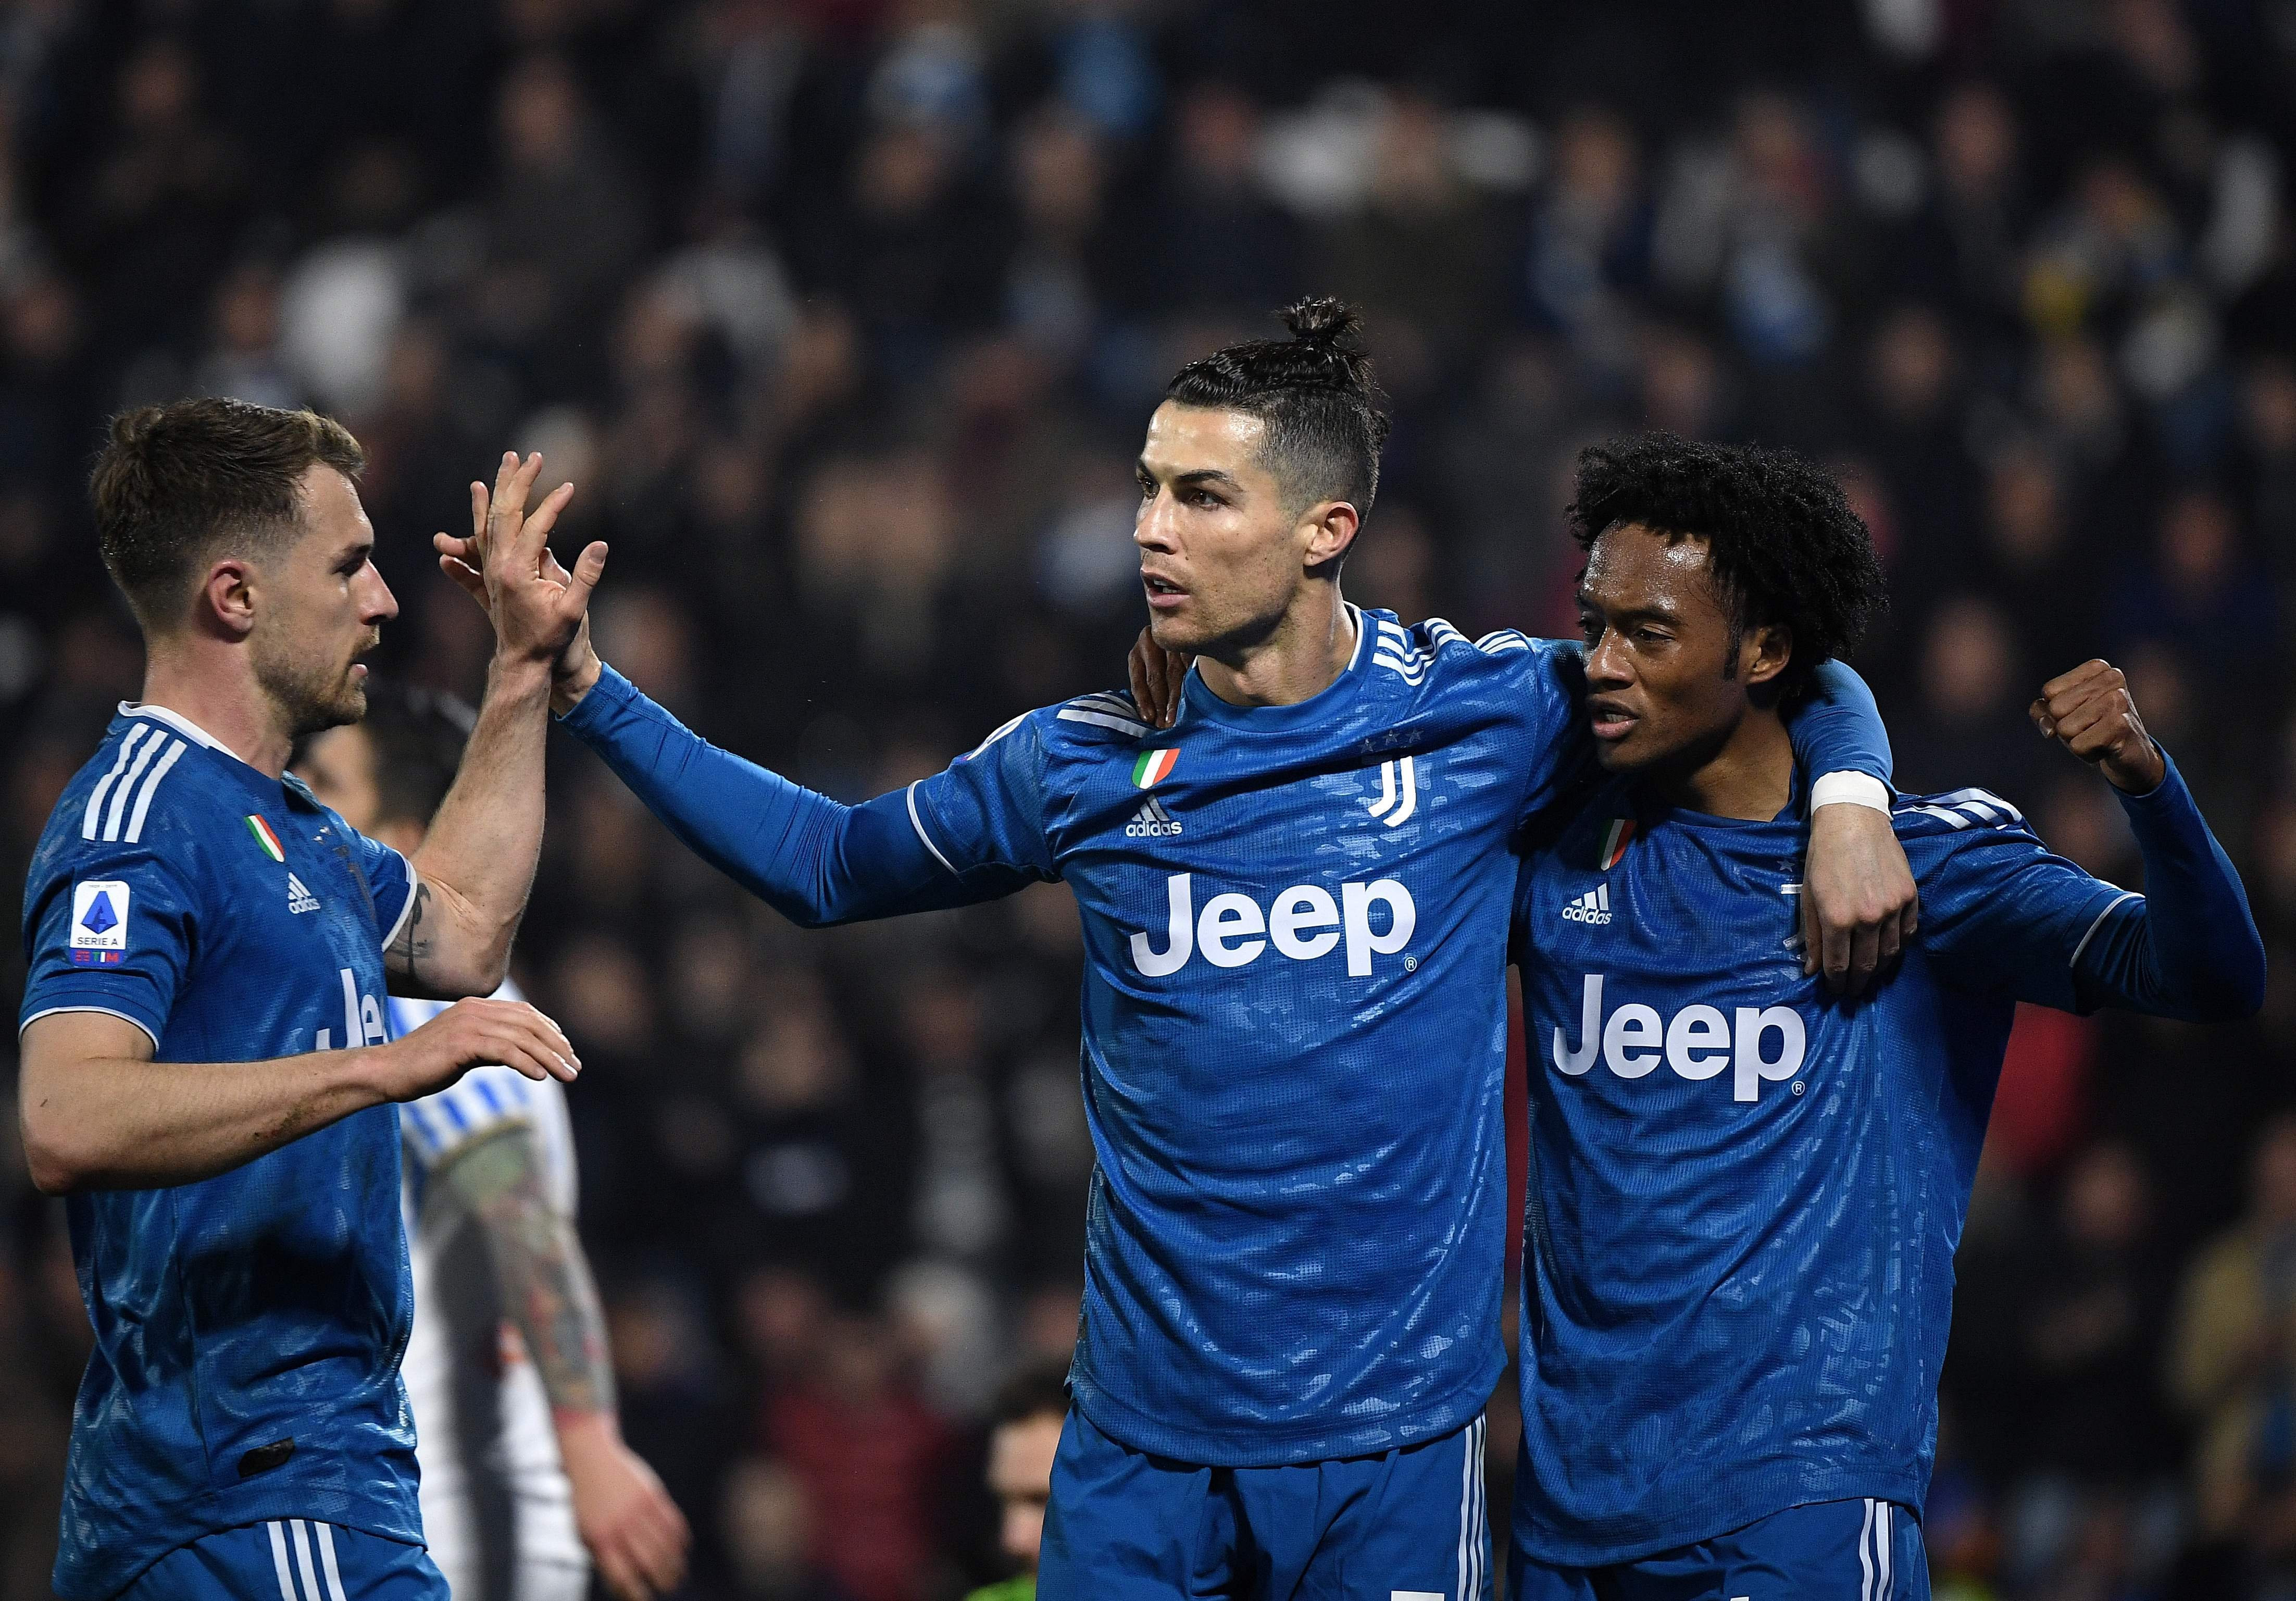 Juve, Inter aim for glory in Coppa Italia clashes   Daily Sabah